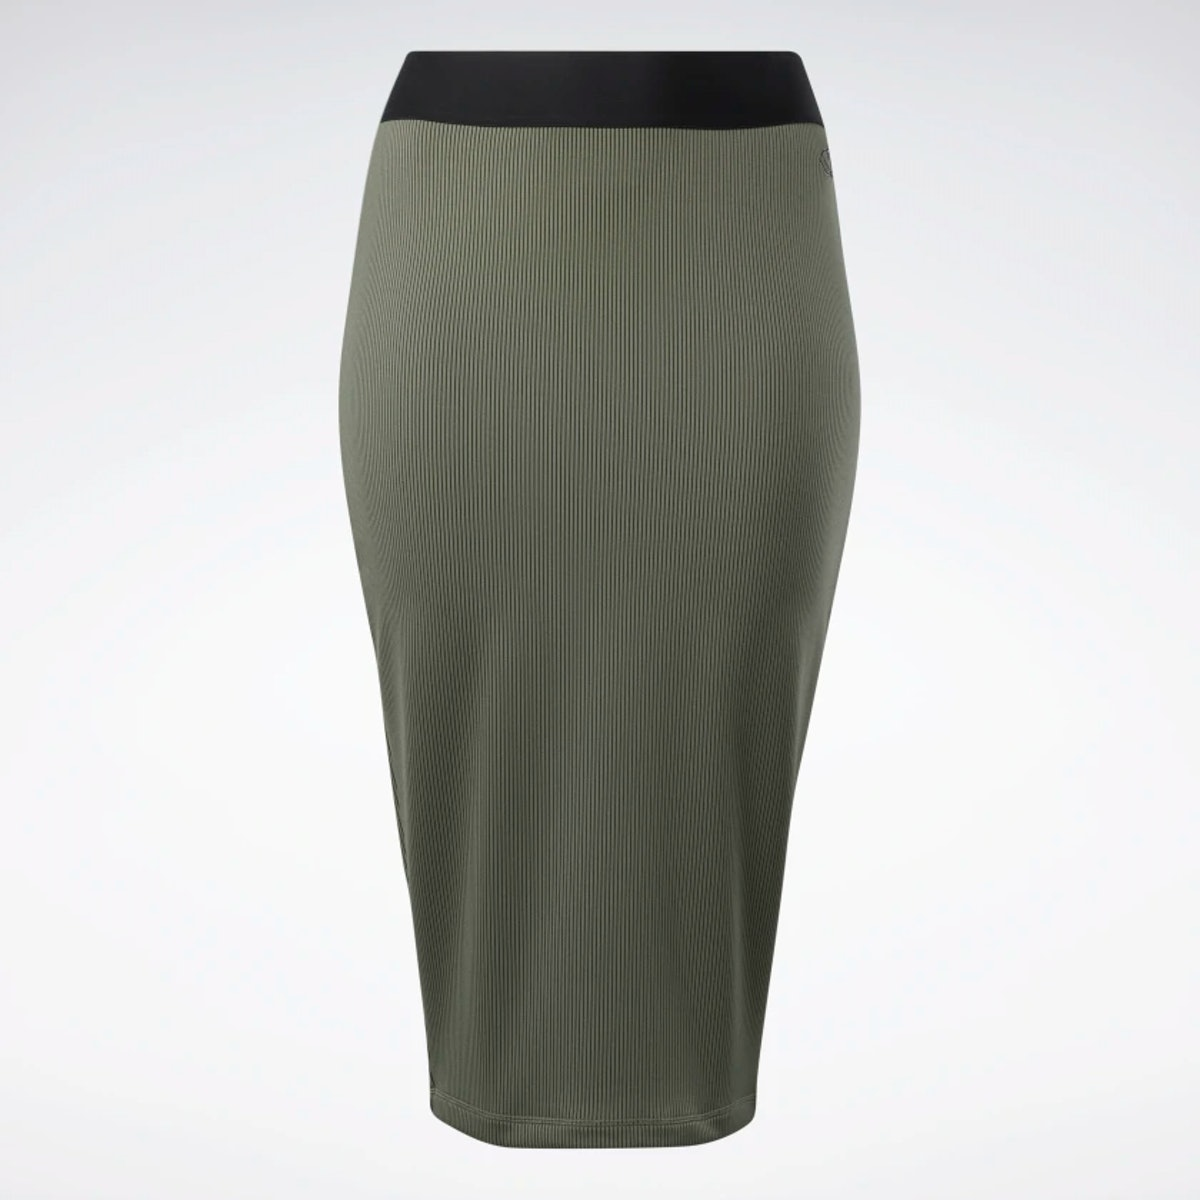 Cardi B's ribbed skirt in the black and army green.